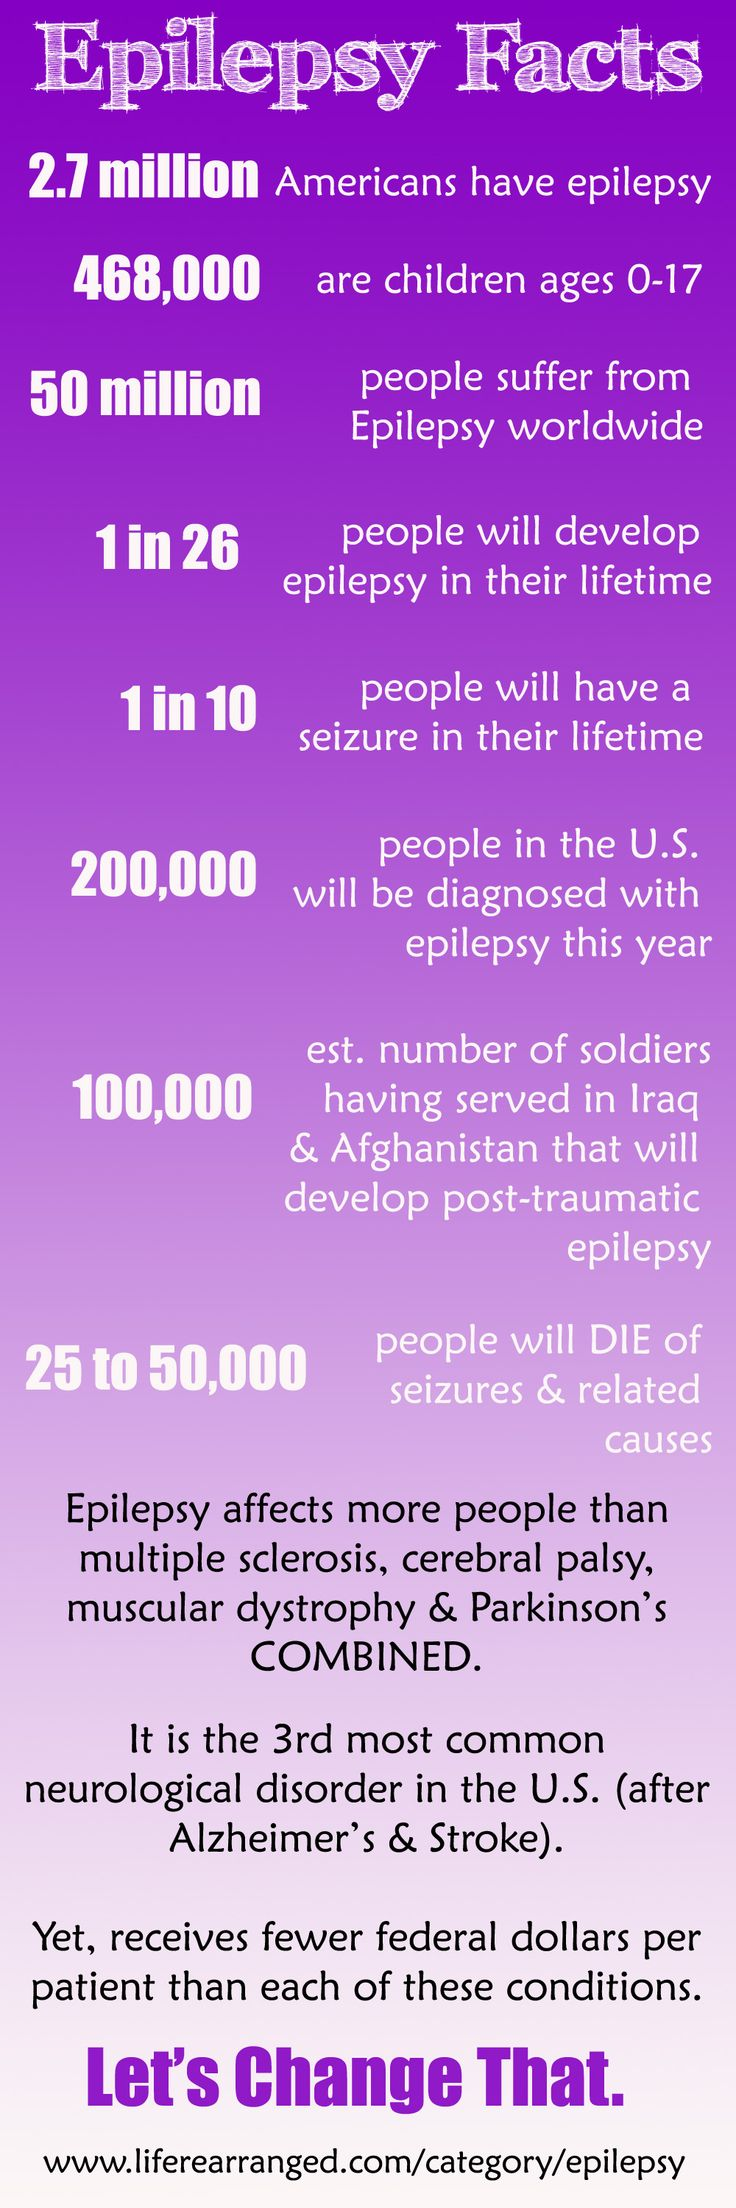 epilepsy facts and figures -- part of a powerful series on epilepsy at Life Rearranged #epilepsy #infographic